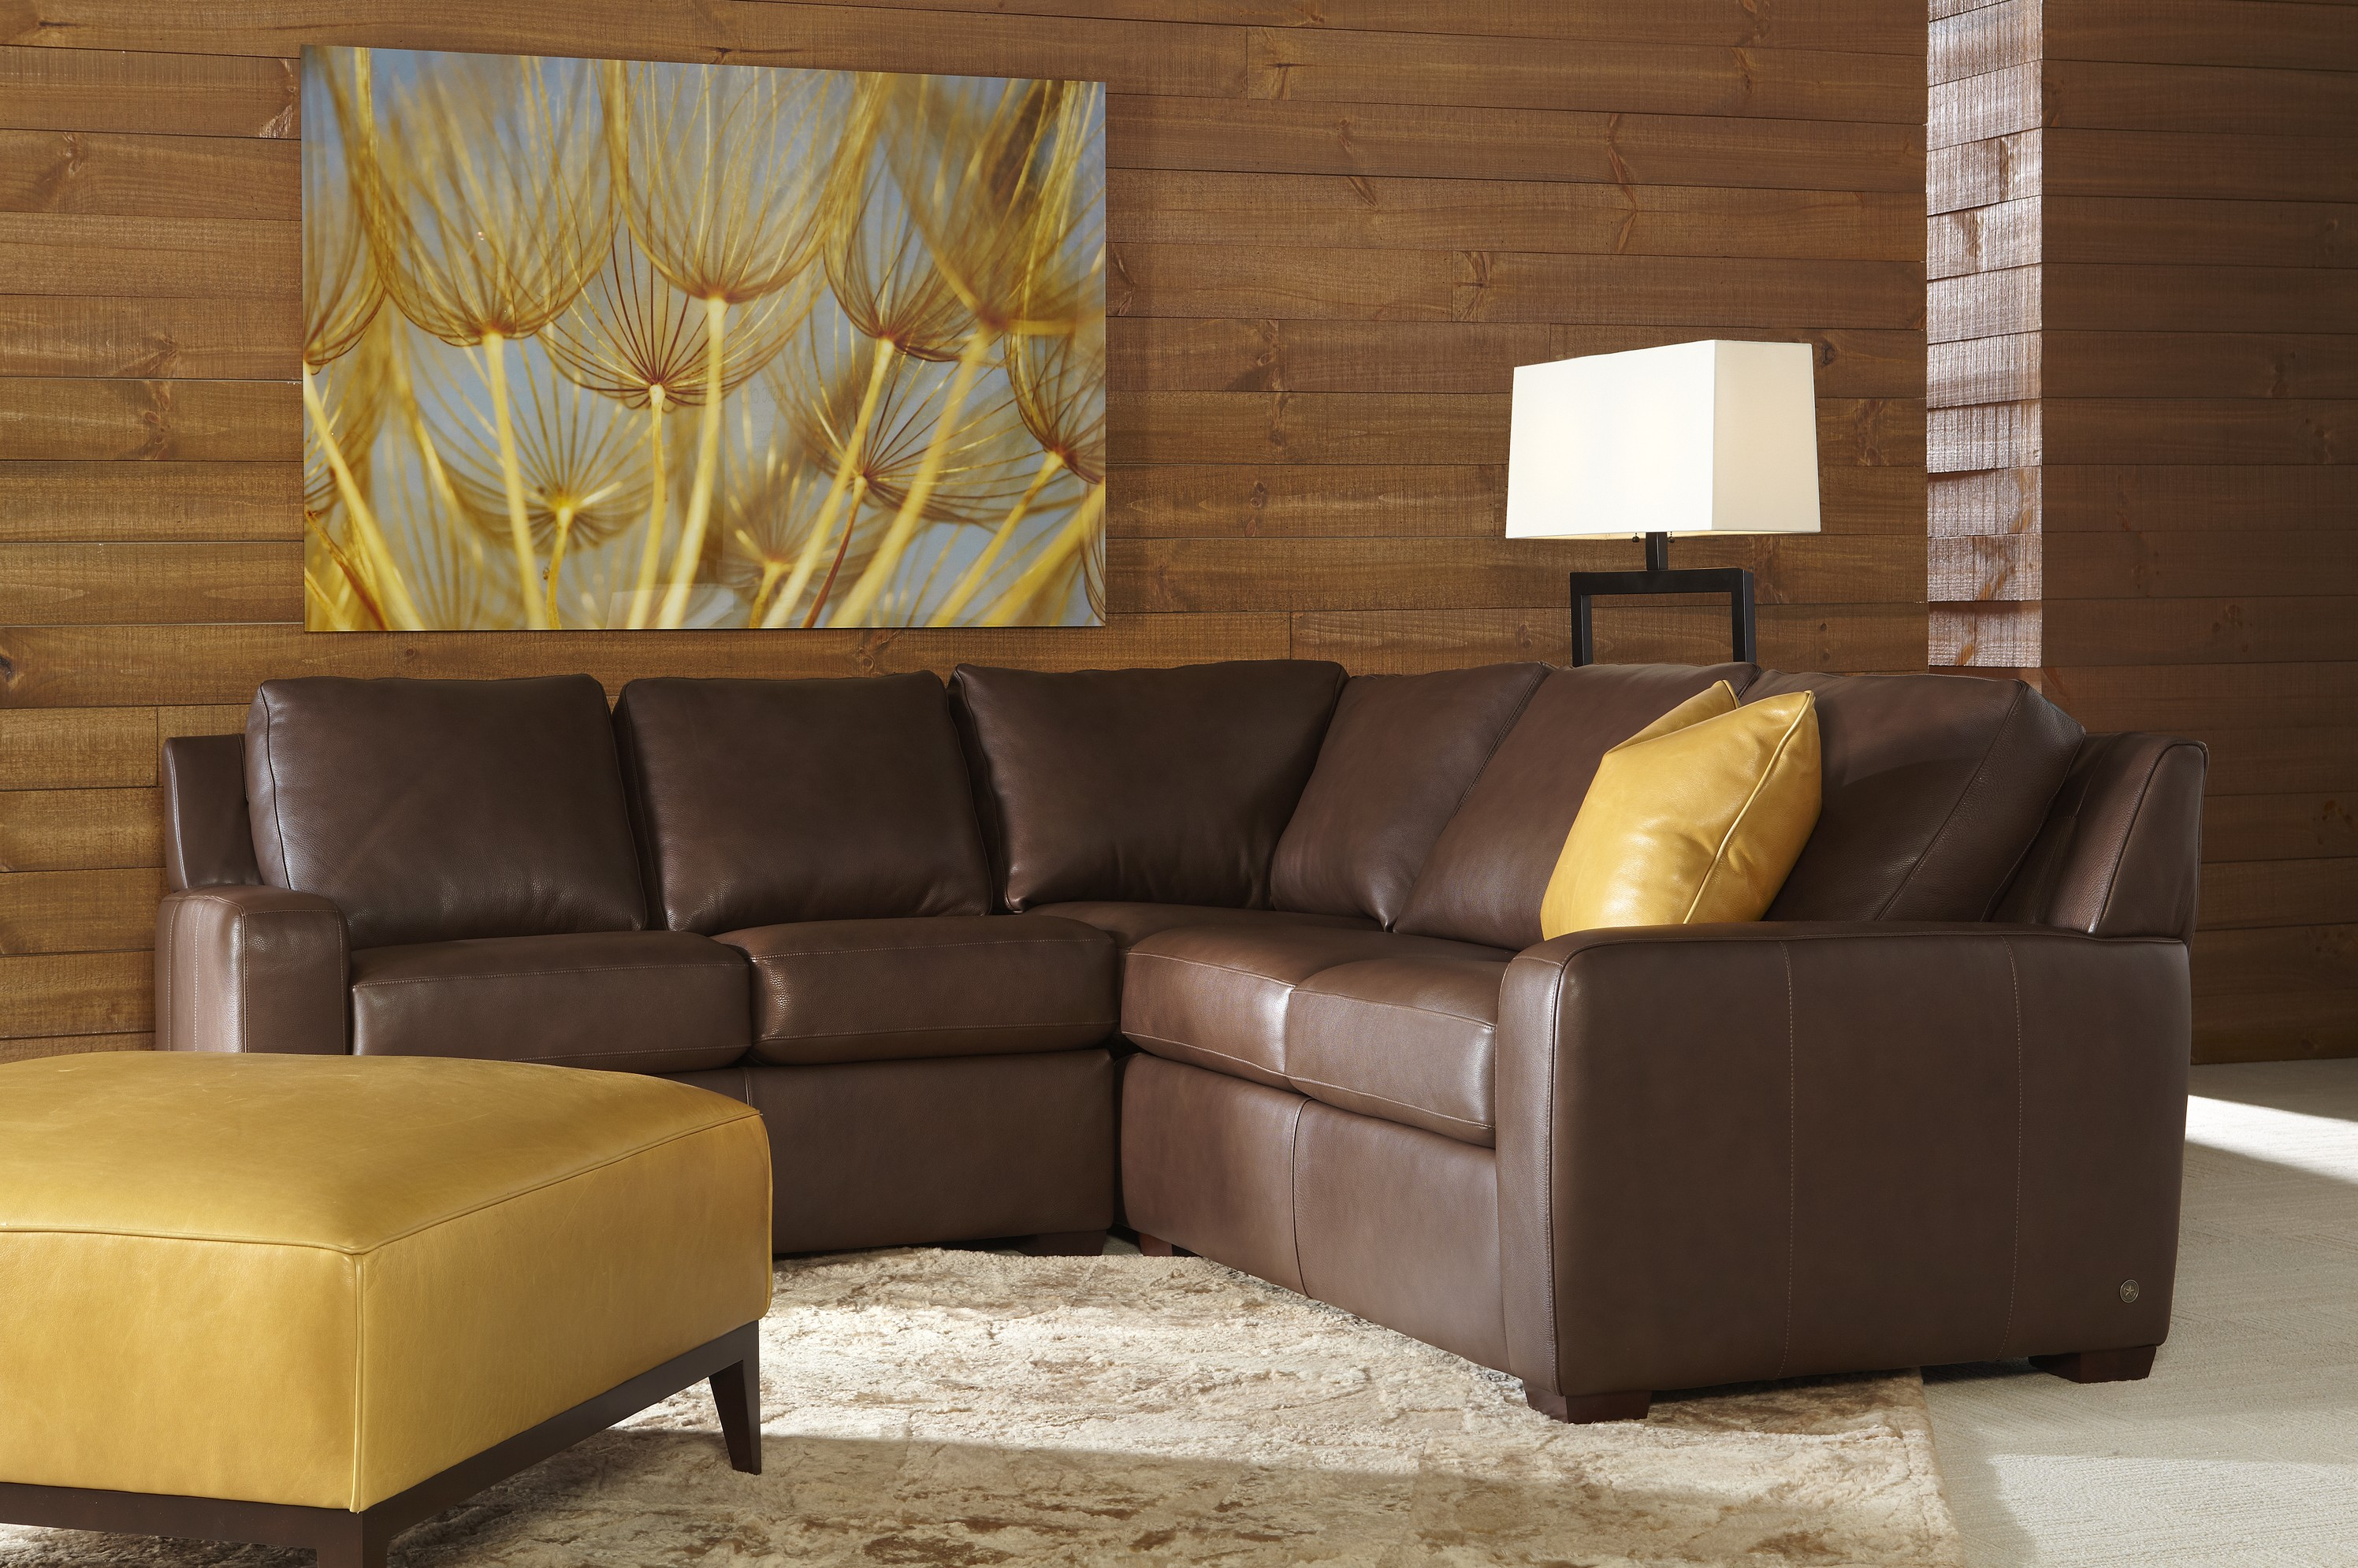 Breathtaking Design Sofas And Sectionals With Cushion And Laminate Flooring For Living Room Ideas